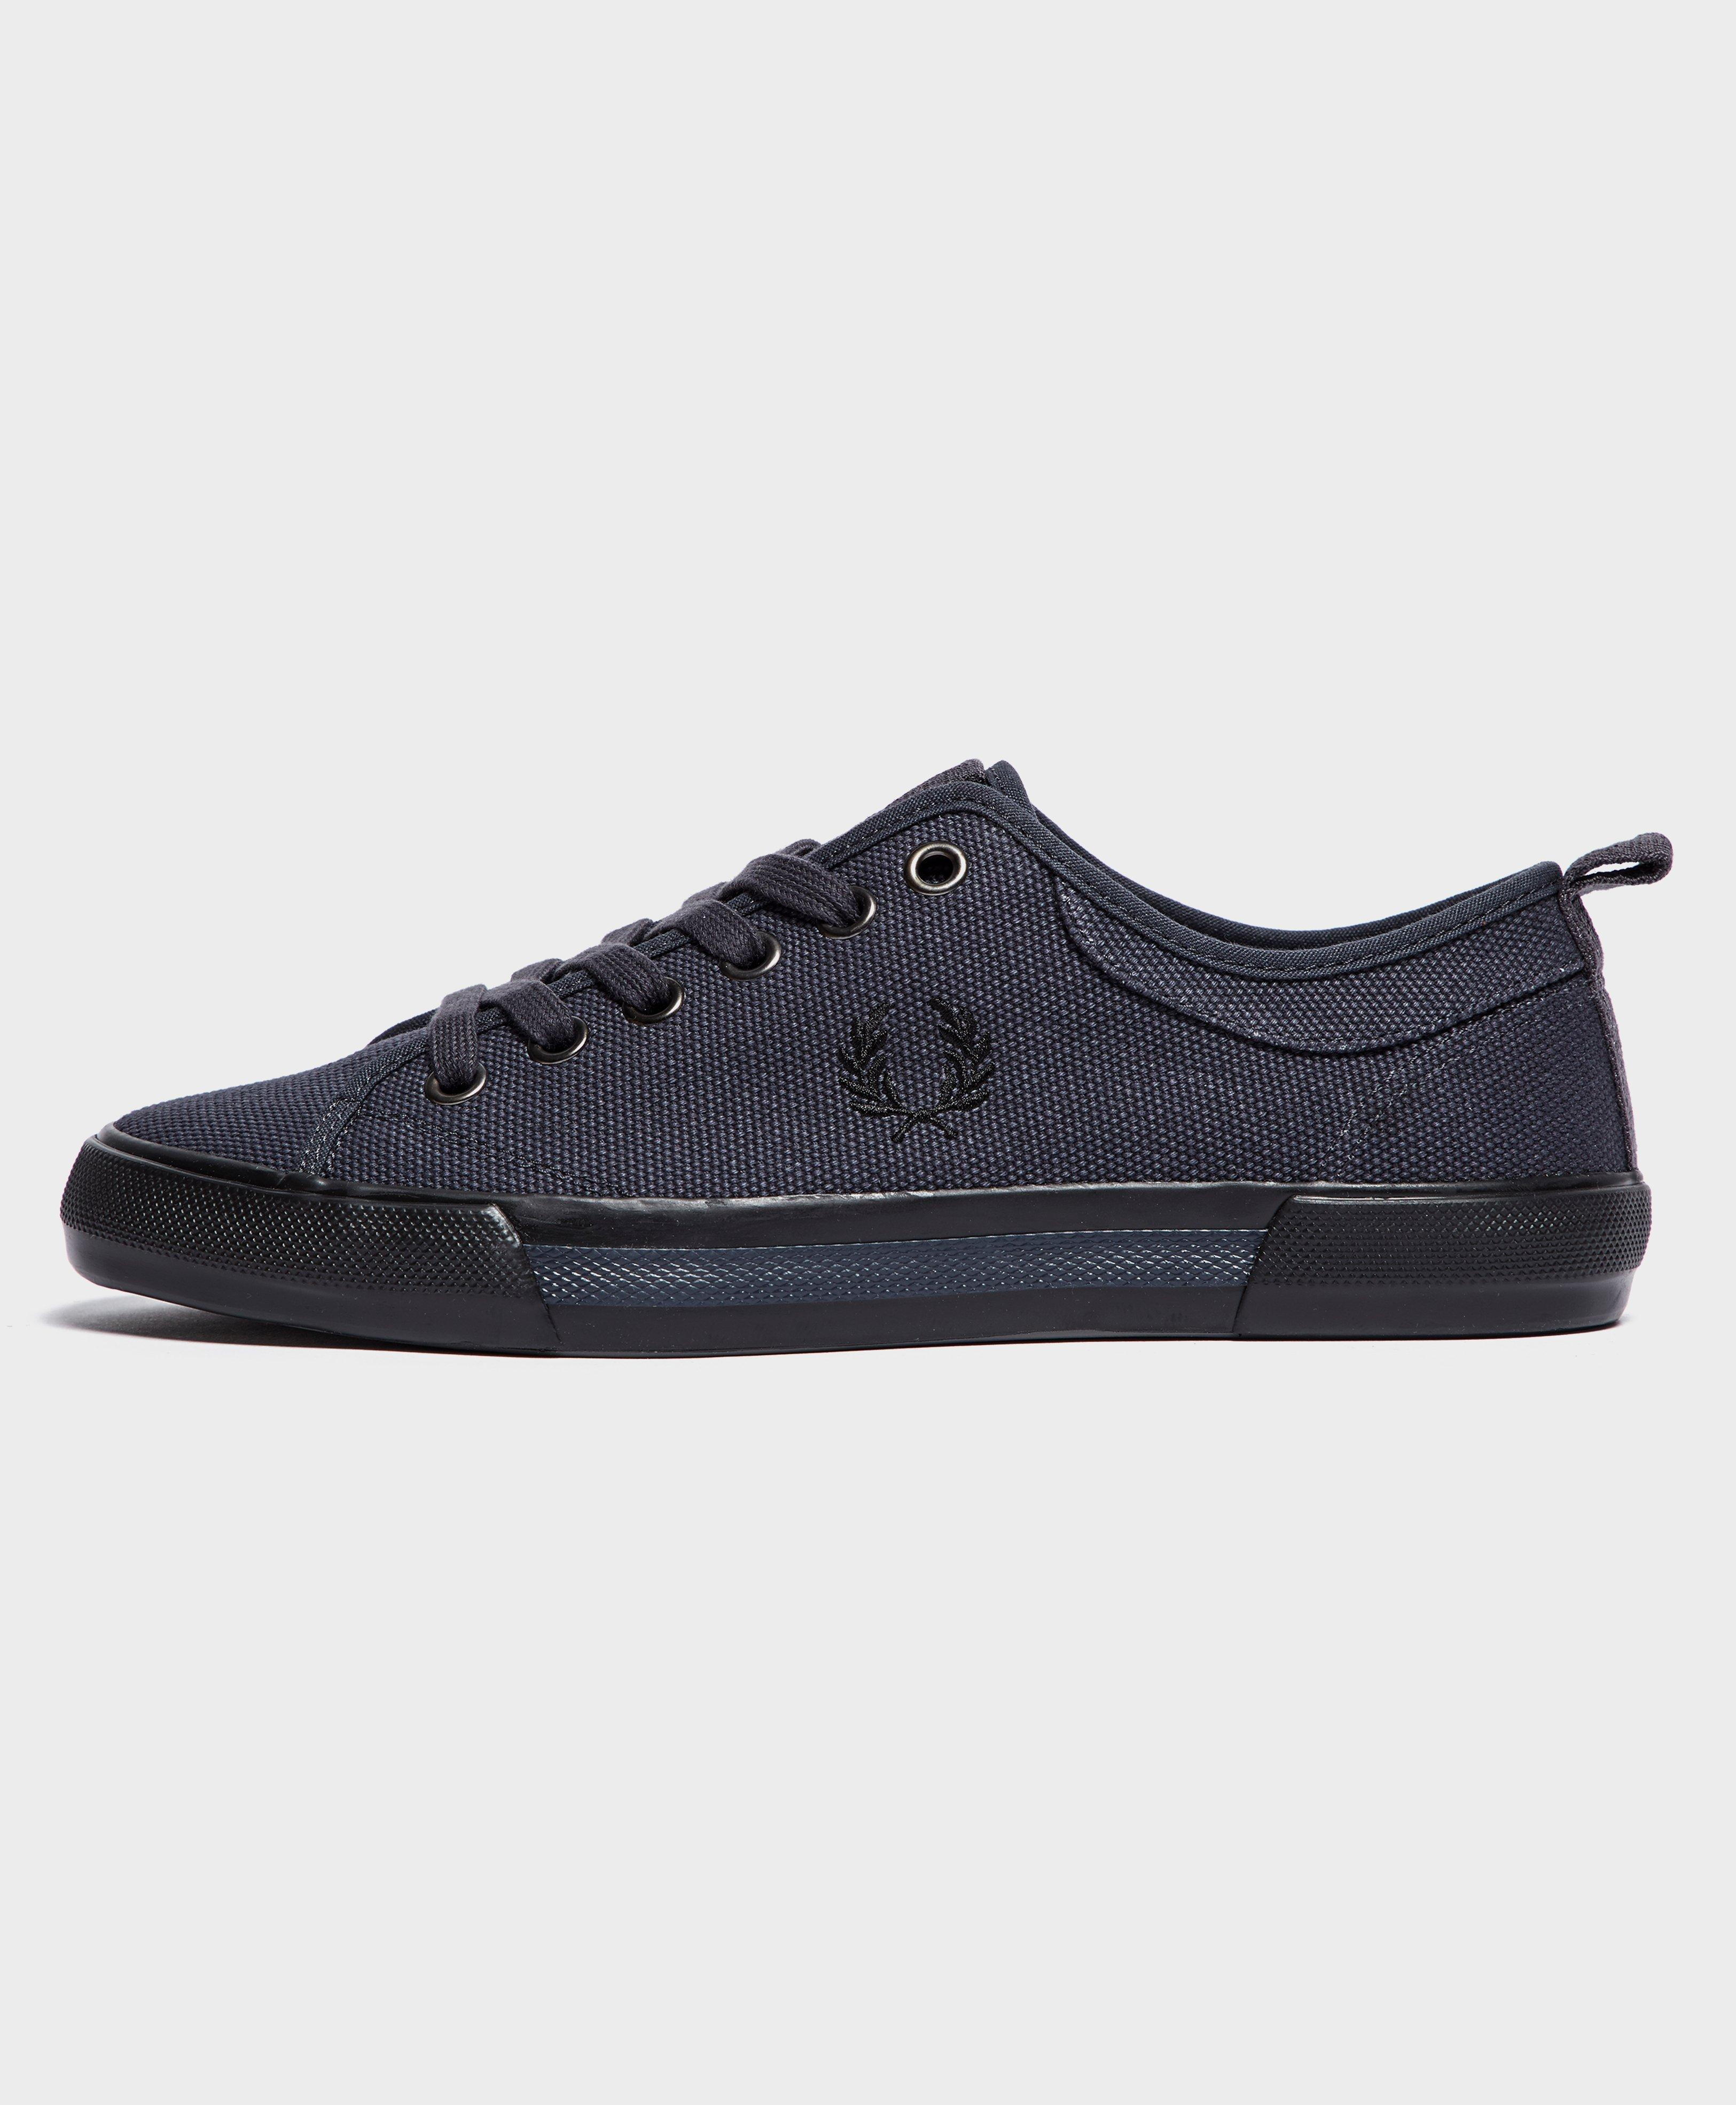 Fred Perry Horton Canvas Trainers in Black enjoy for sale with mastercard cheap online J1i9YMN